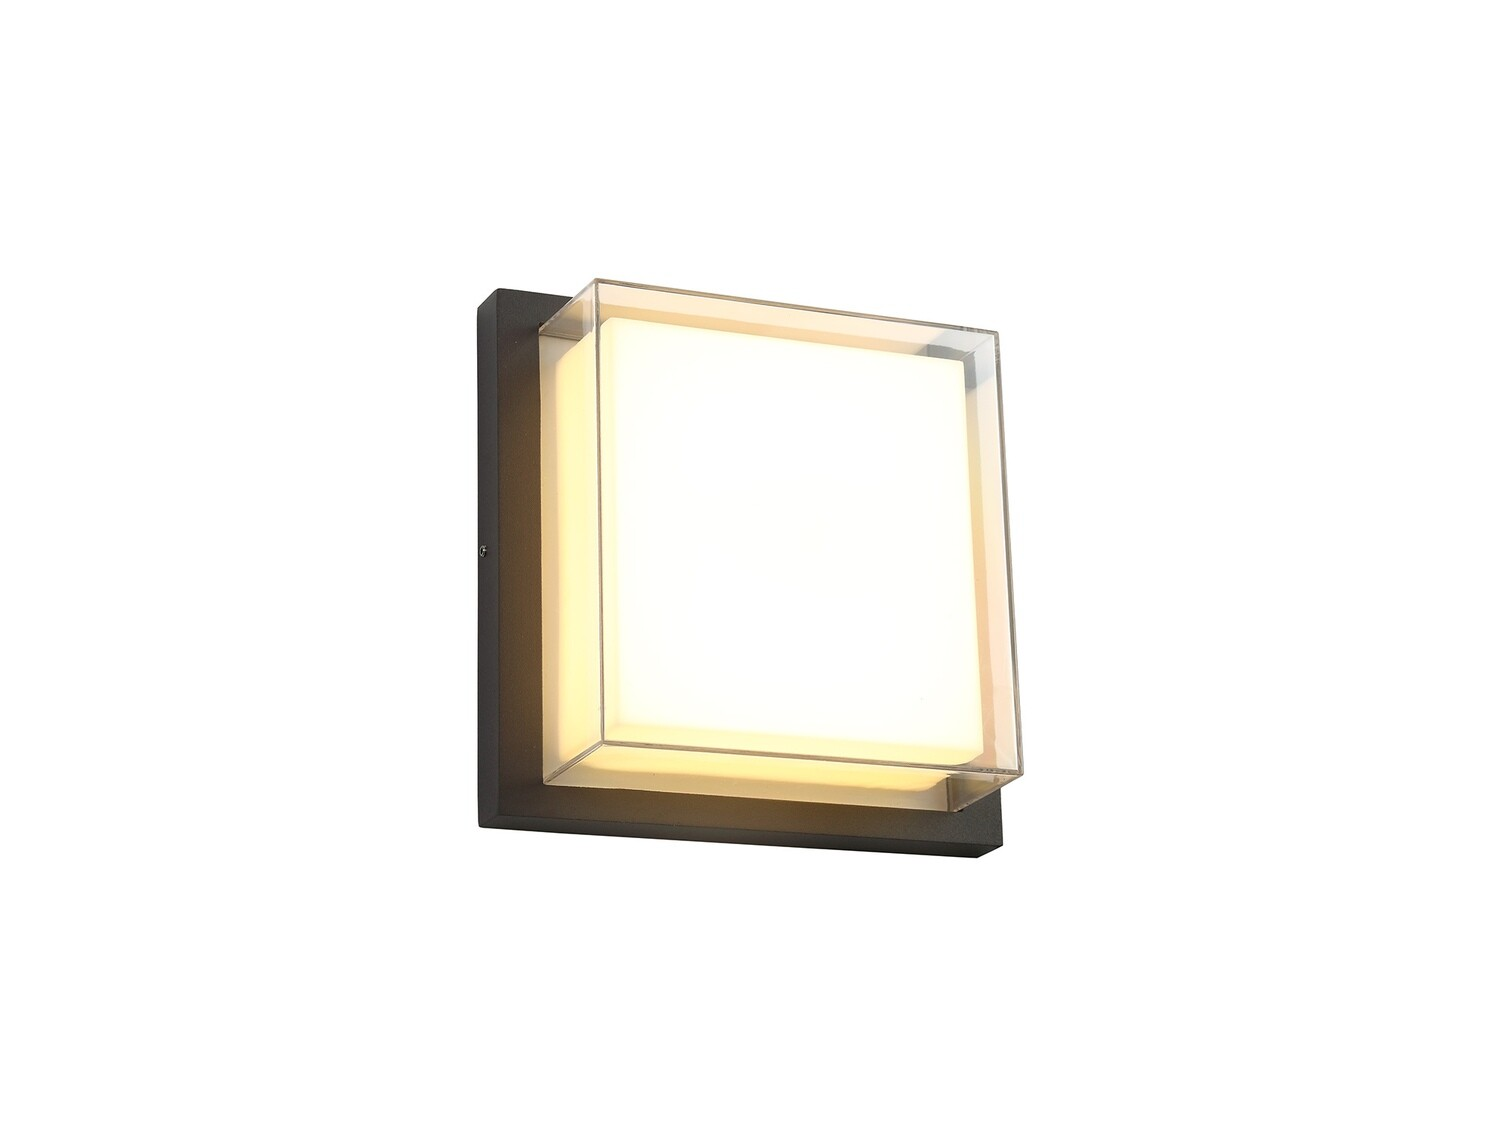 Dani Wall Lamp, 1 x 16W LED, 3000K, IP65, Anthracite/Opal/Clear PC